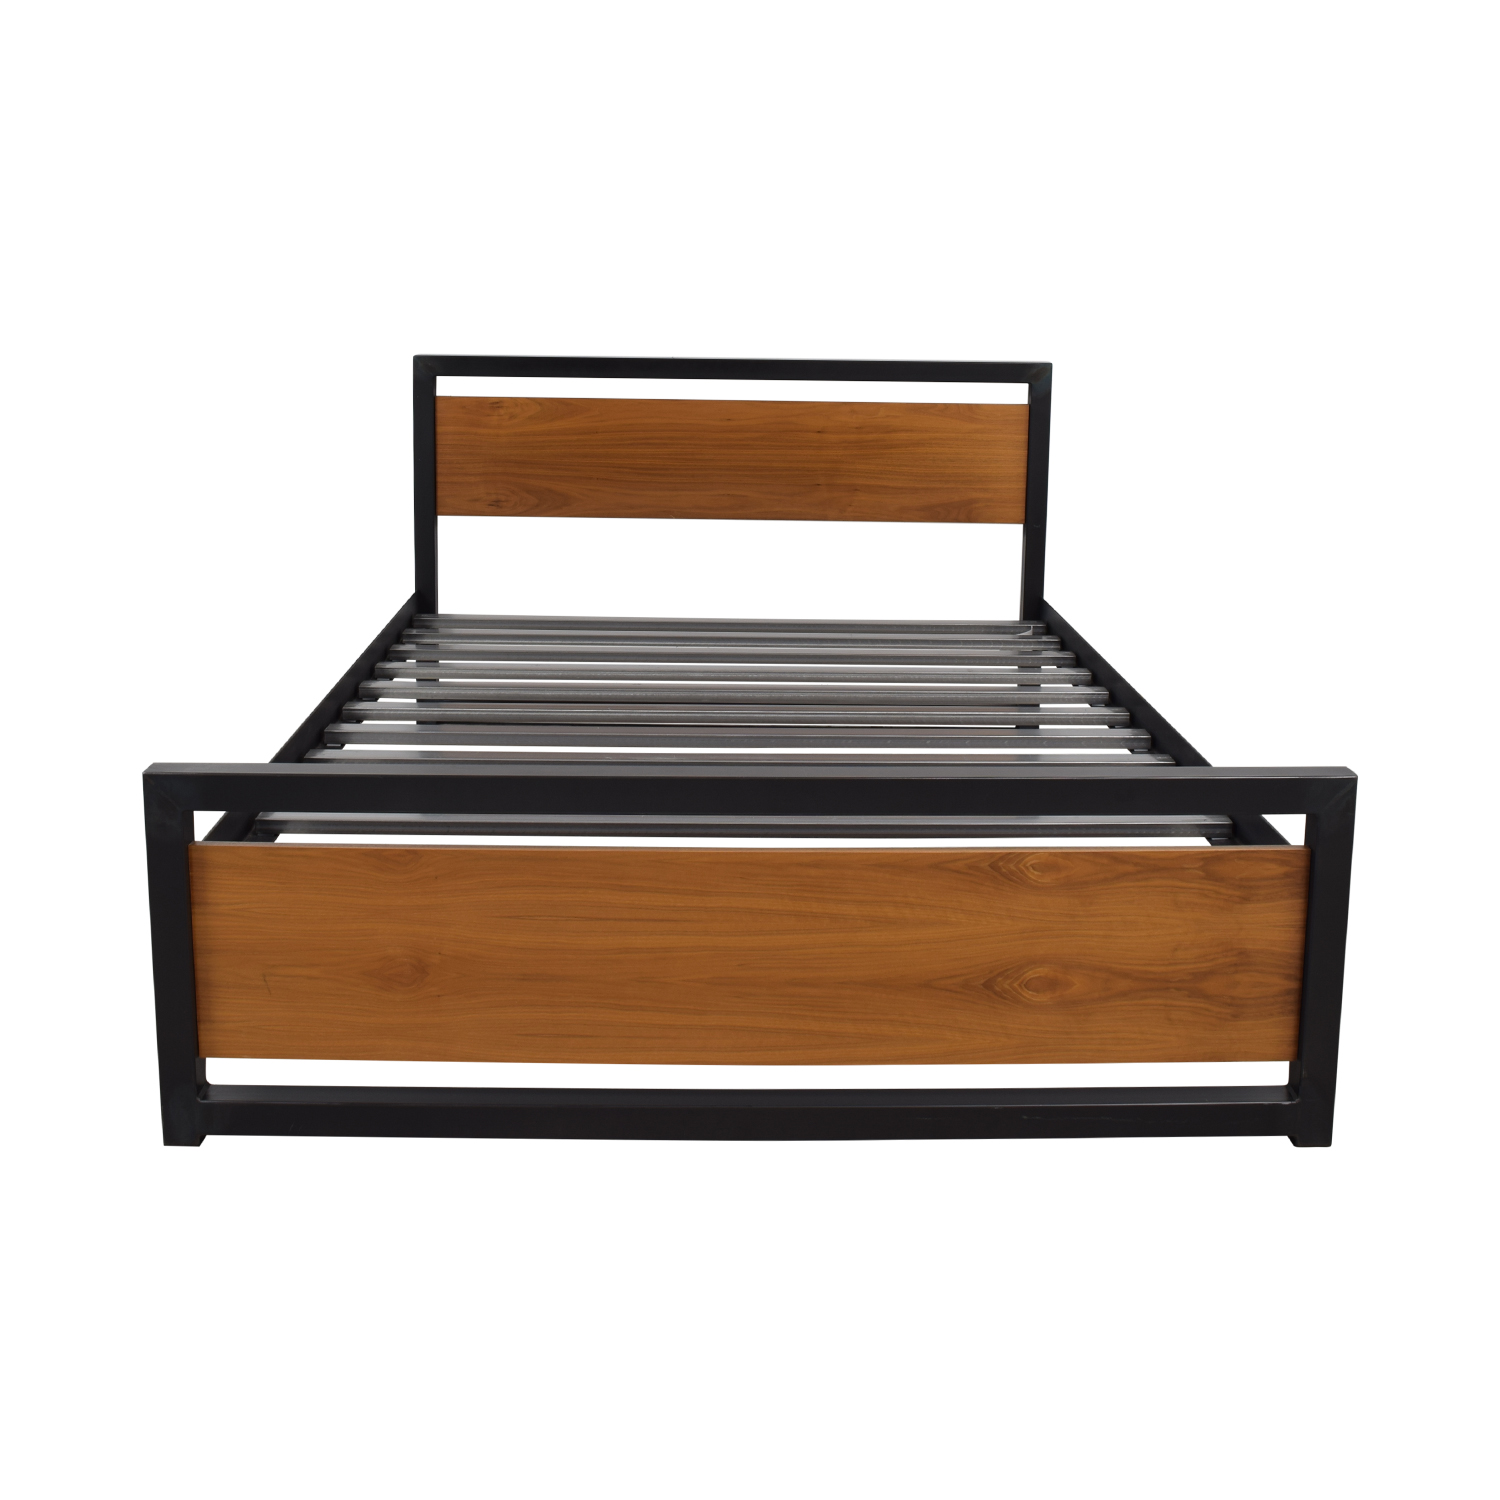 Room & Board Room & Board Piper Natural Steel Wood Panel Queen Bed Frame coupon